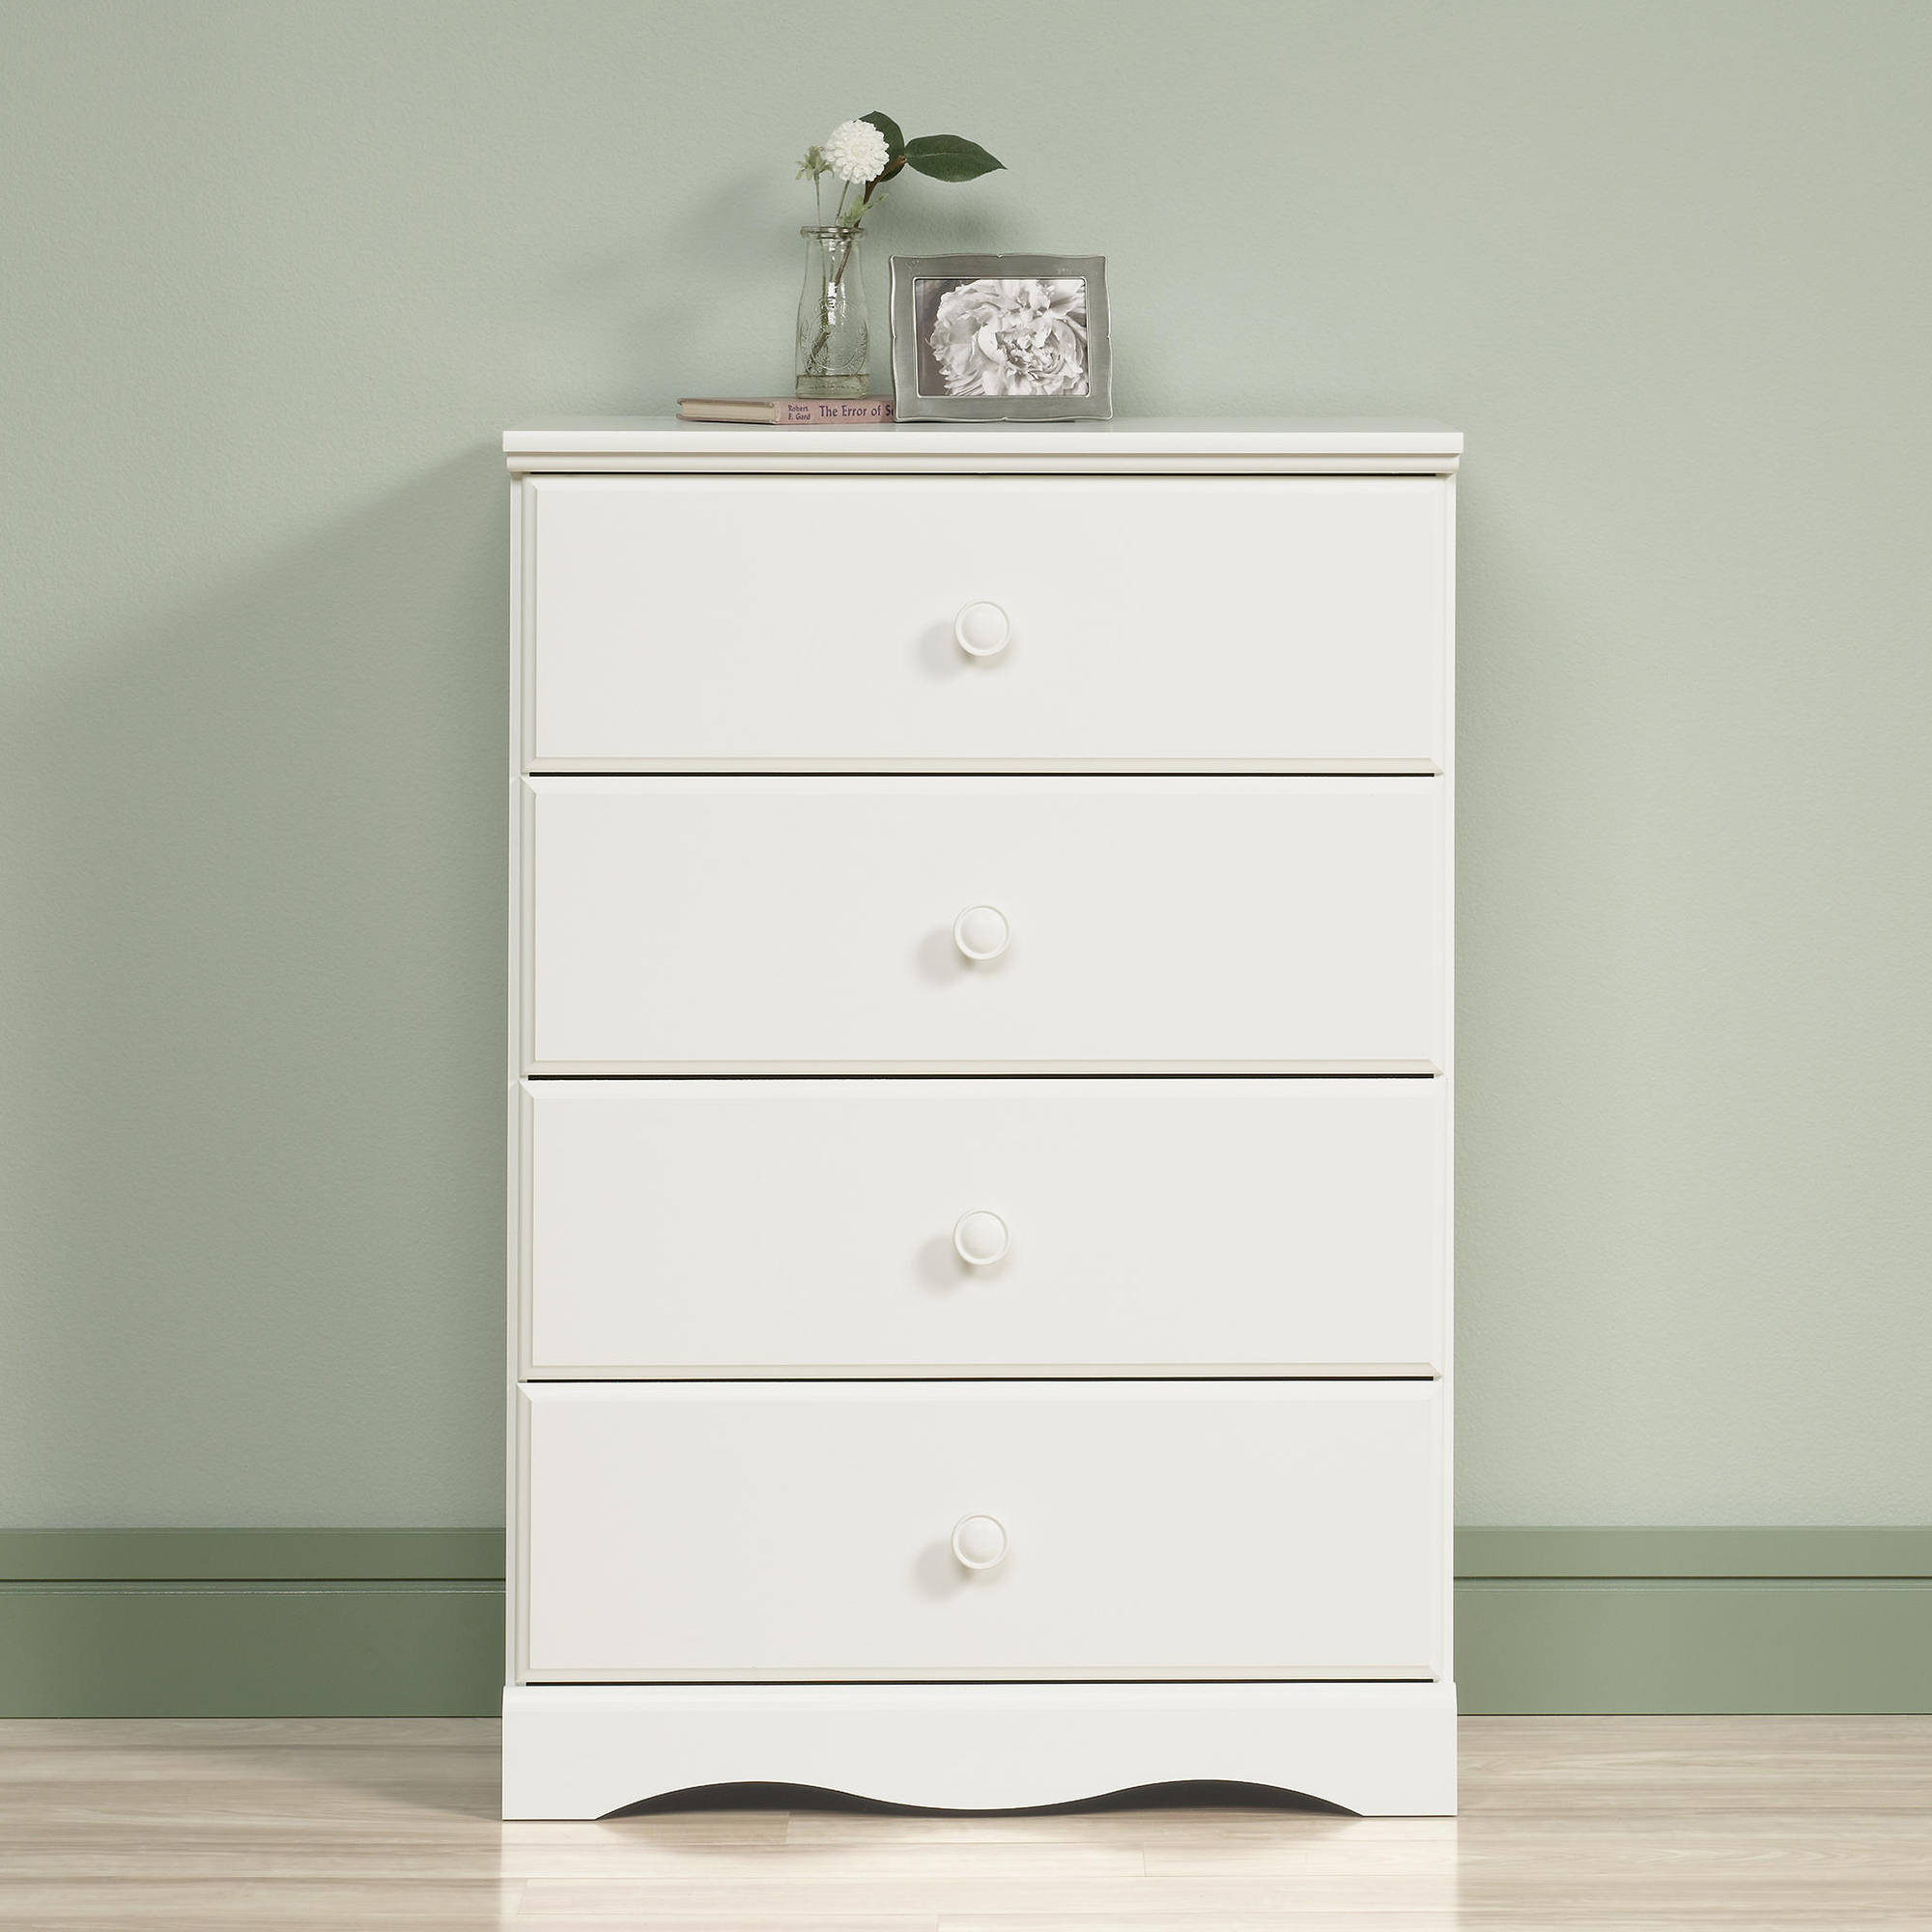 Sauder Storybook 4-Drawer Dresser, Soft White finish